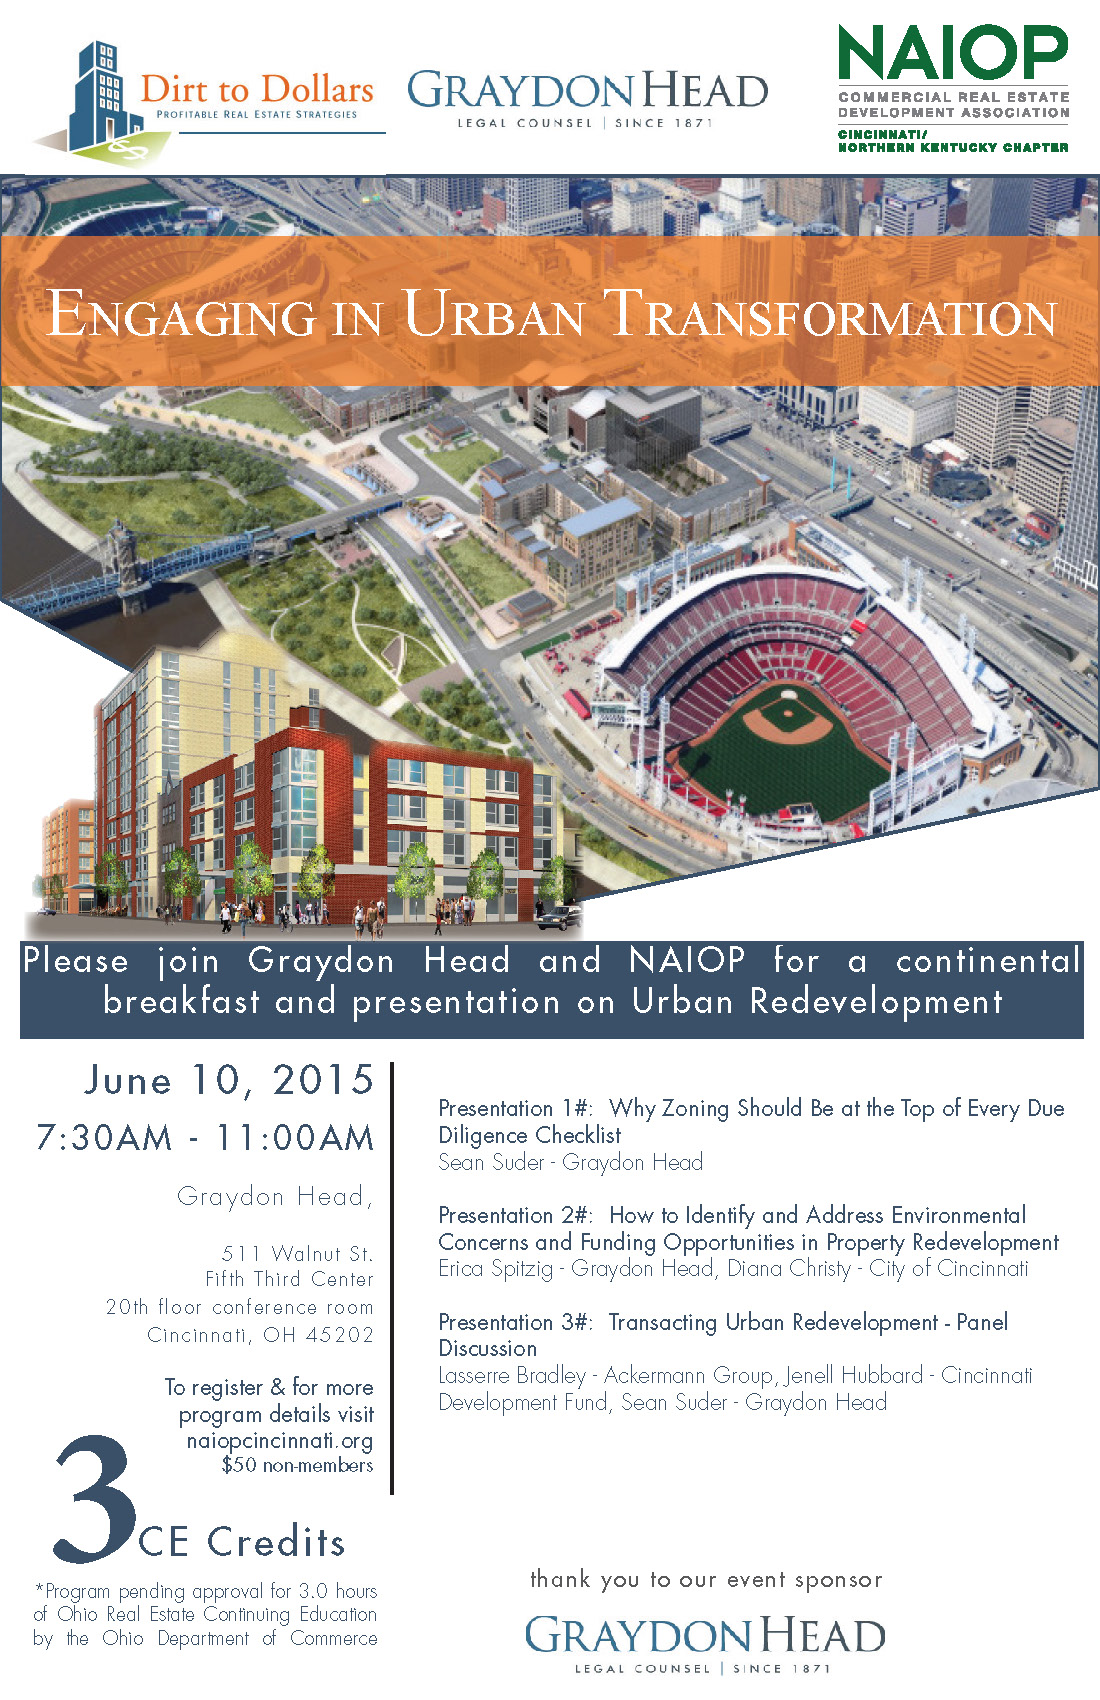 Continuing Education Course – 3 CE Credits – Engaging in Urban Transformation